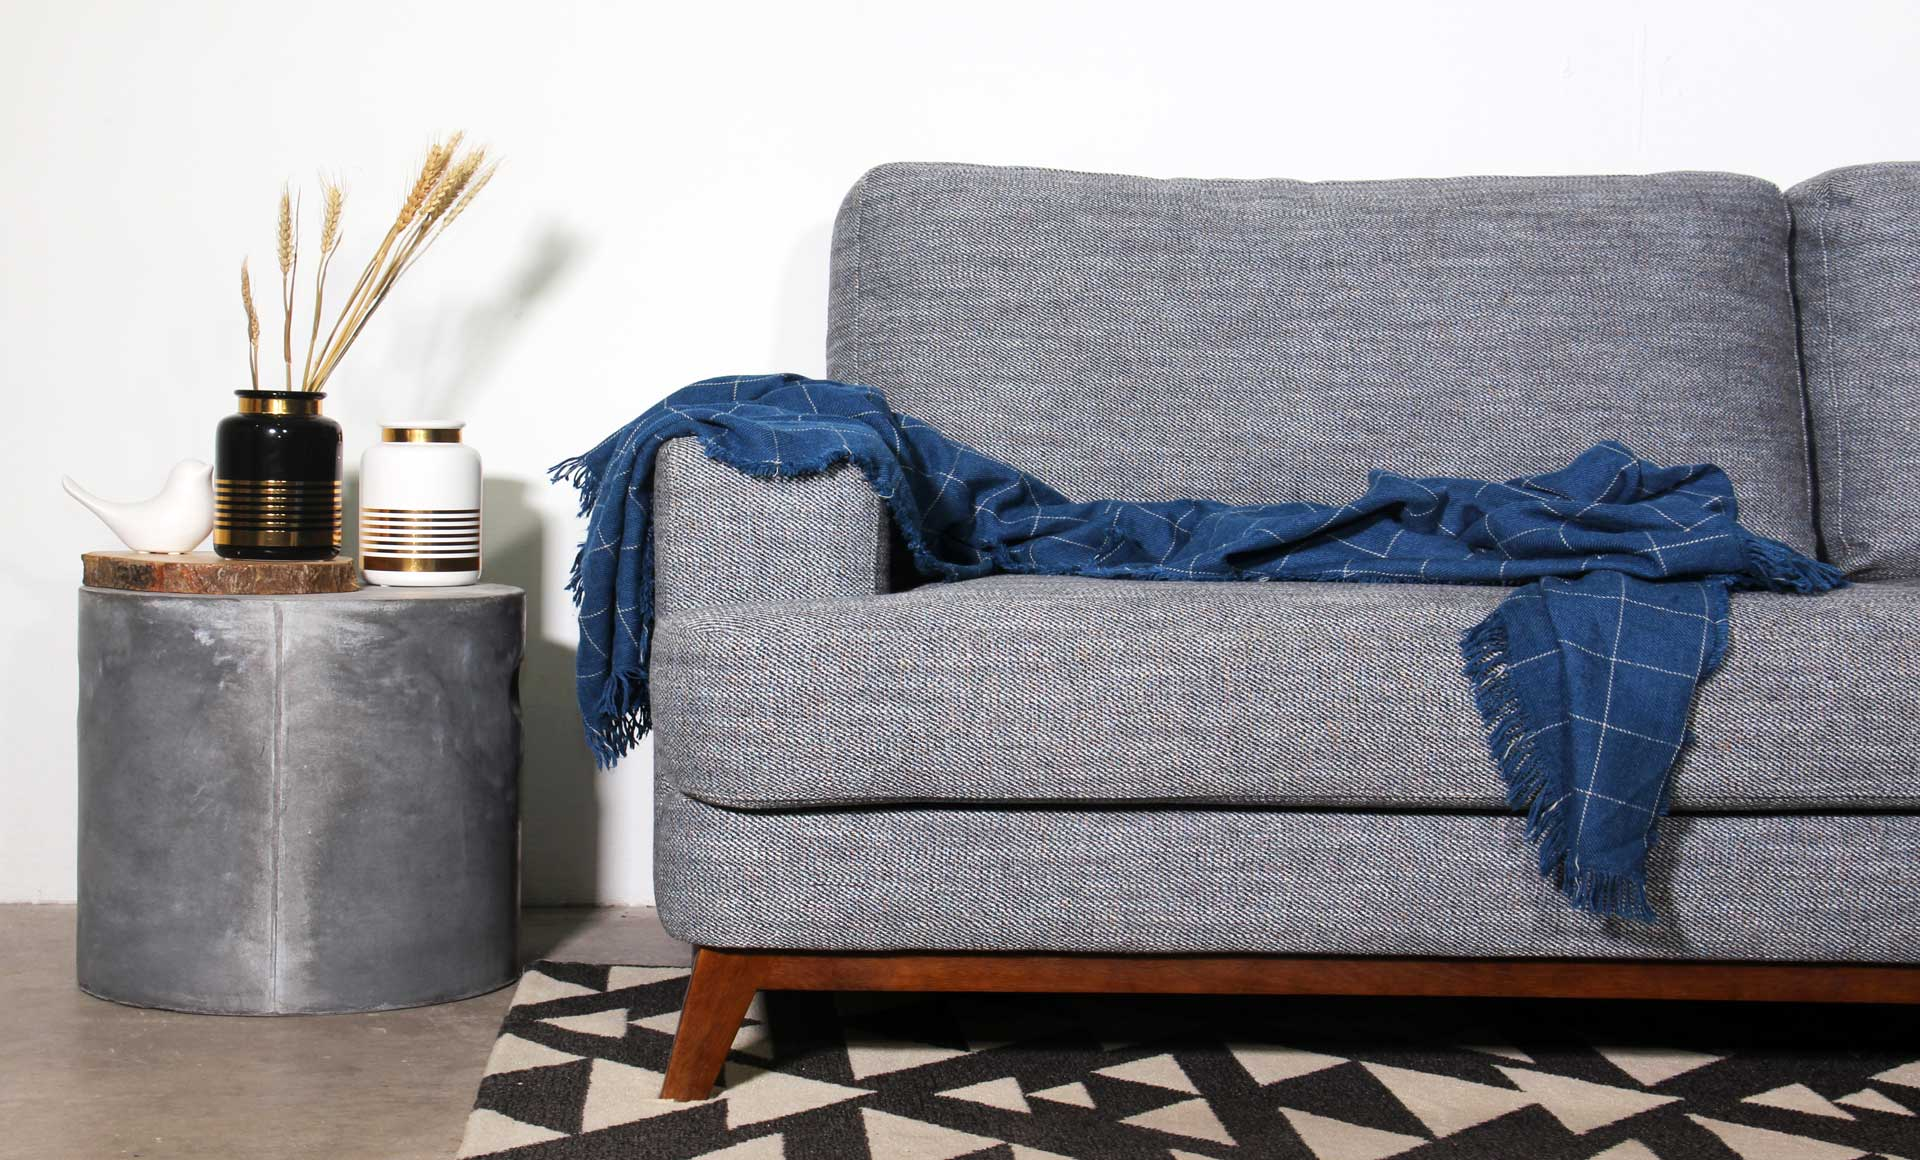 Best Fabric Sofa: Customisable Features with Stain Repellent Technology